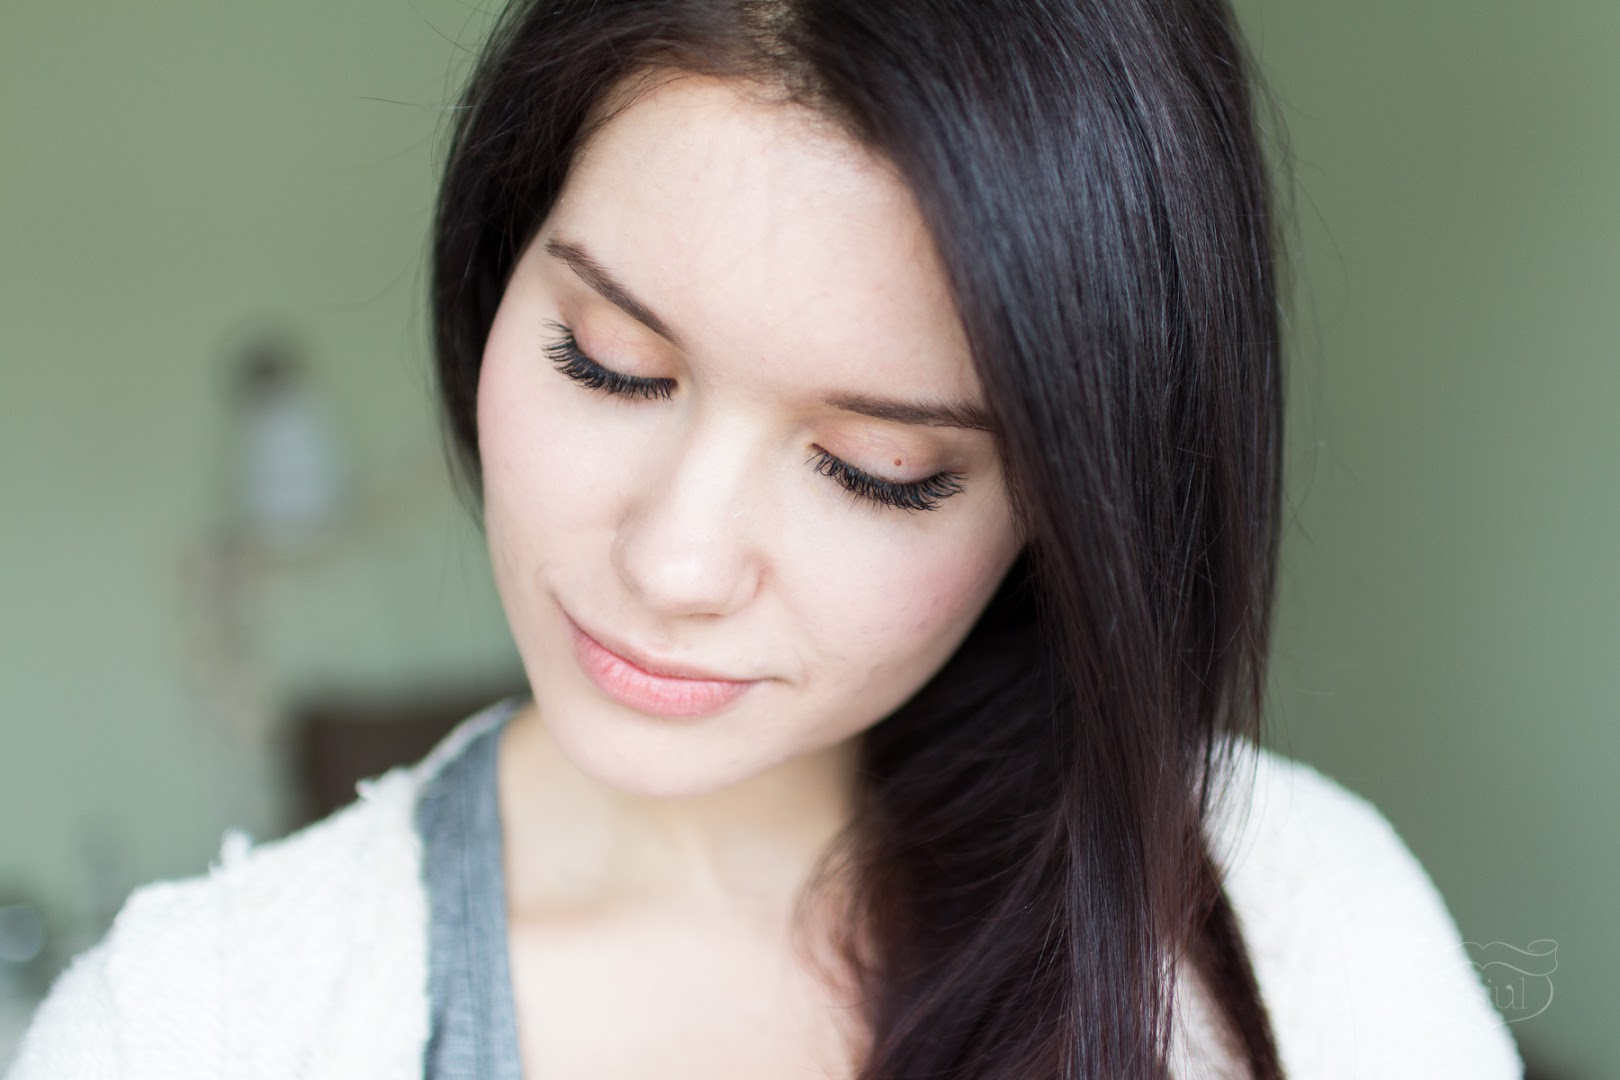 374bbe9a451 Julia Caban Blog: How to Easily Remove Eyelash Extensions at Home?